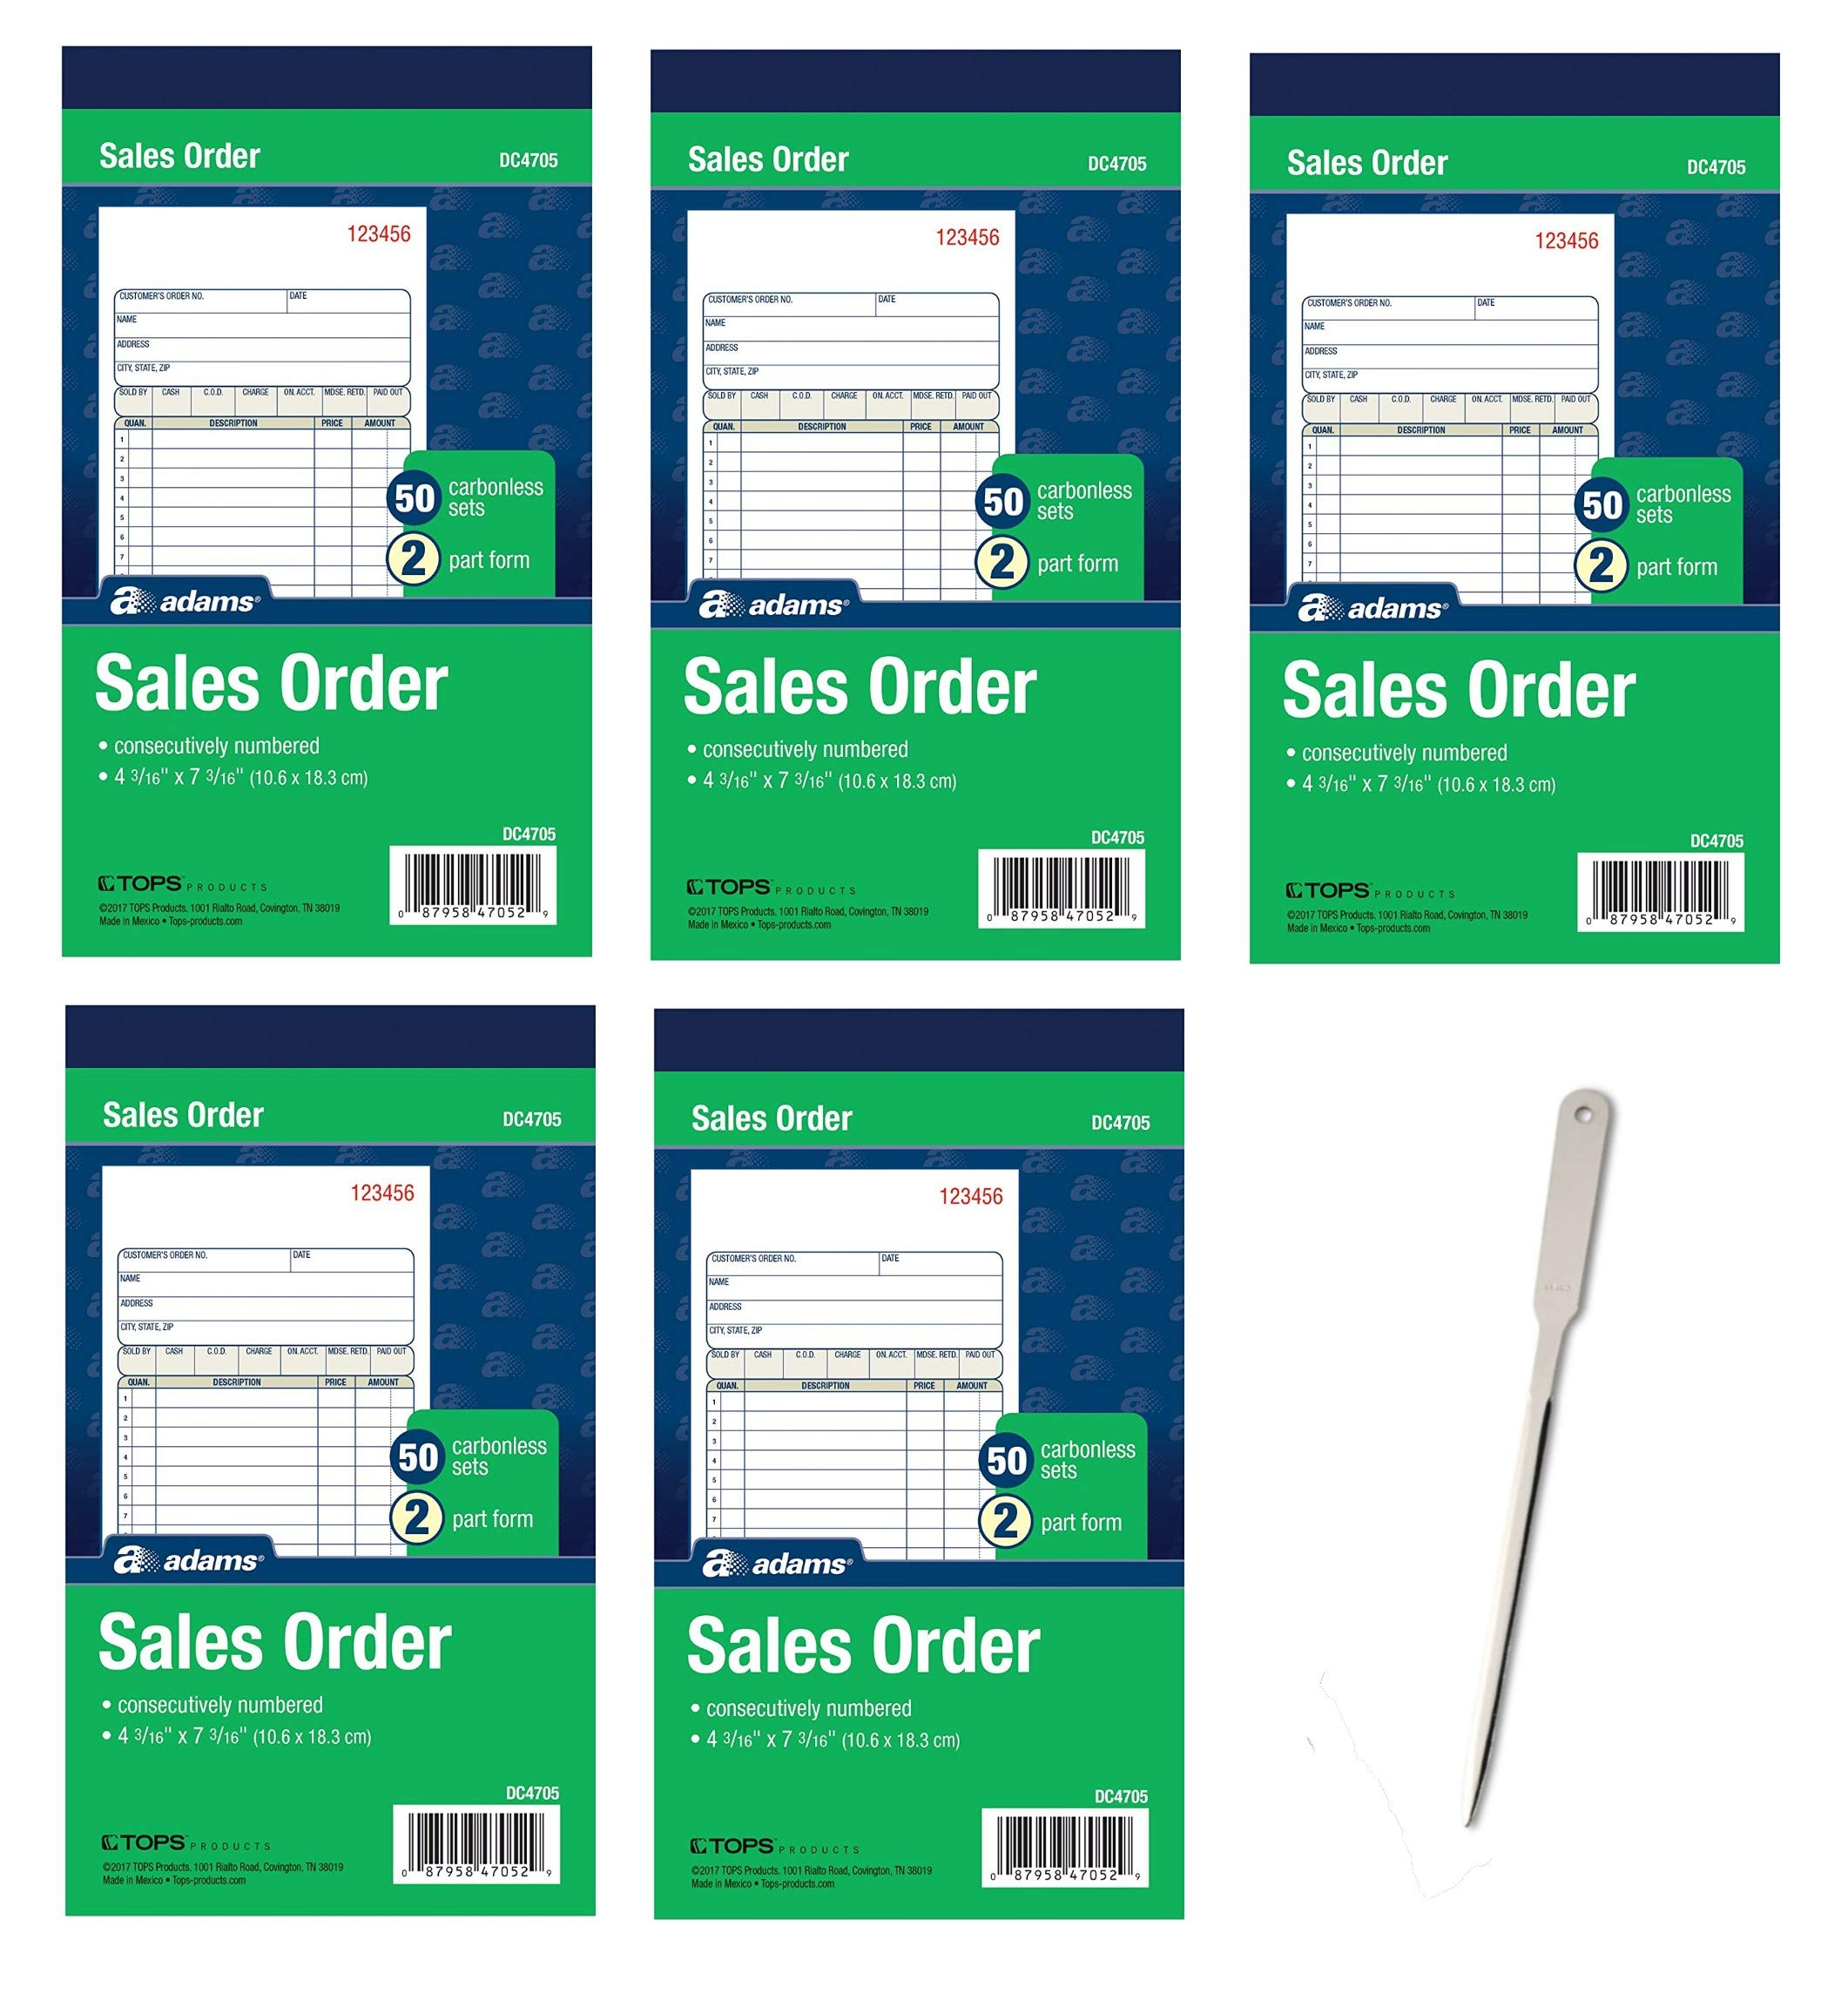 Adams Sales Order Book, 2-Part, Carbonless, White/Canary, 4-3/16 x 7-3/16 inches, 50 Sets per Book, 5 Books, 250 Sets Total (DC4705) - Bundle Includes Universal Letter Opener